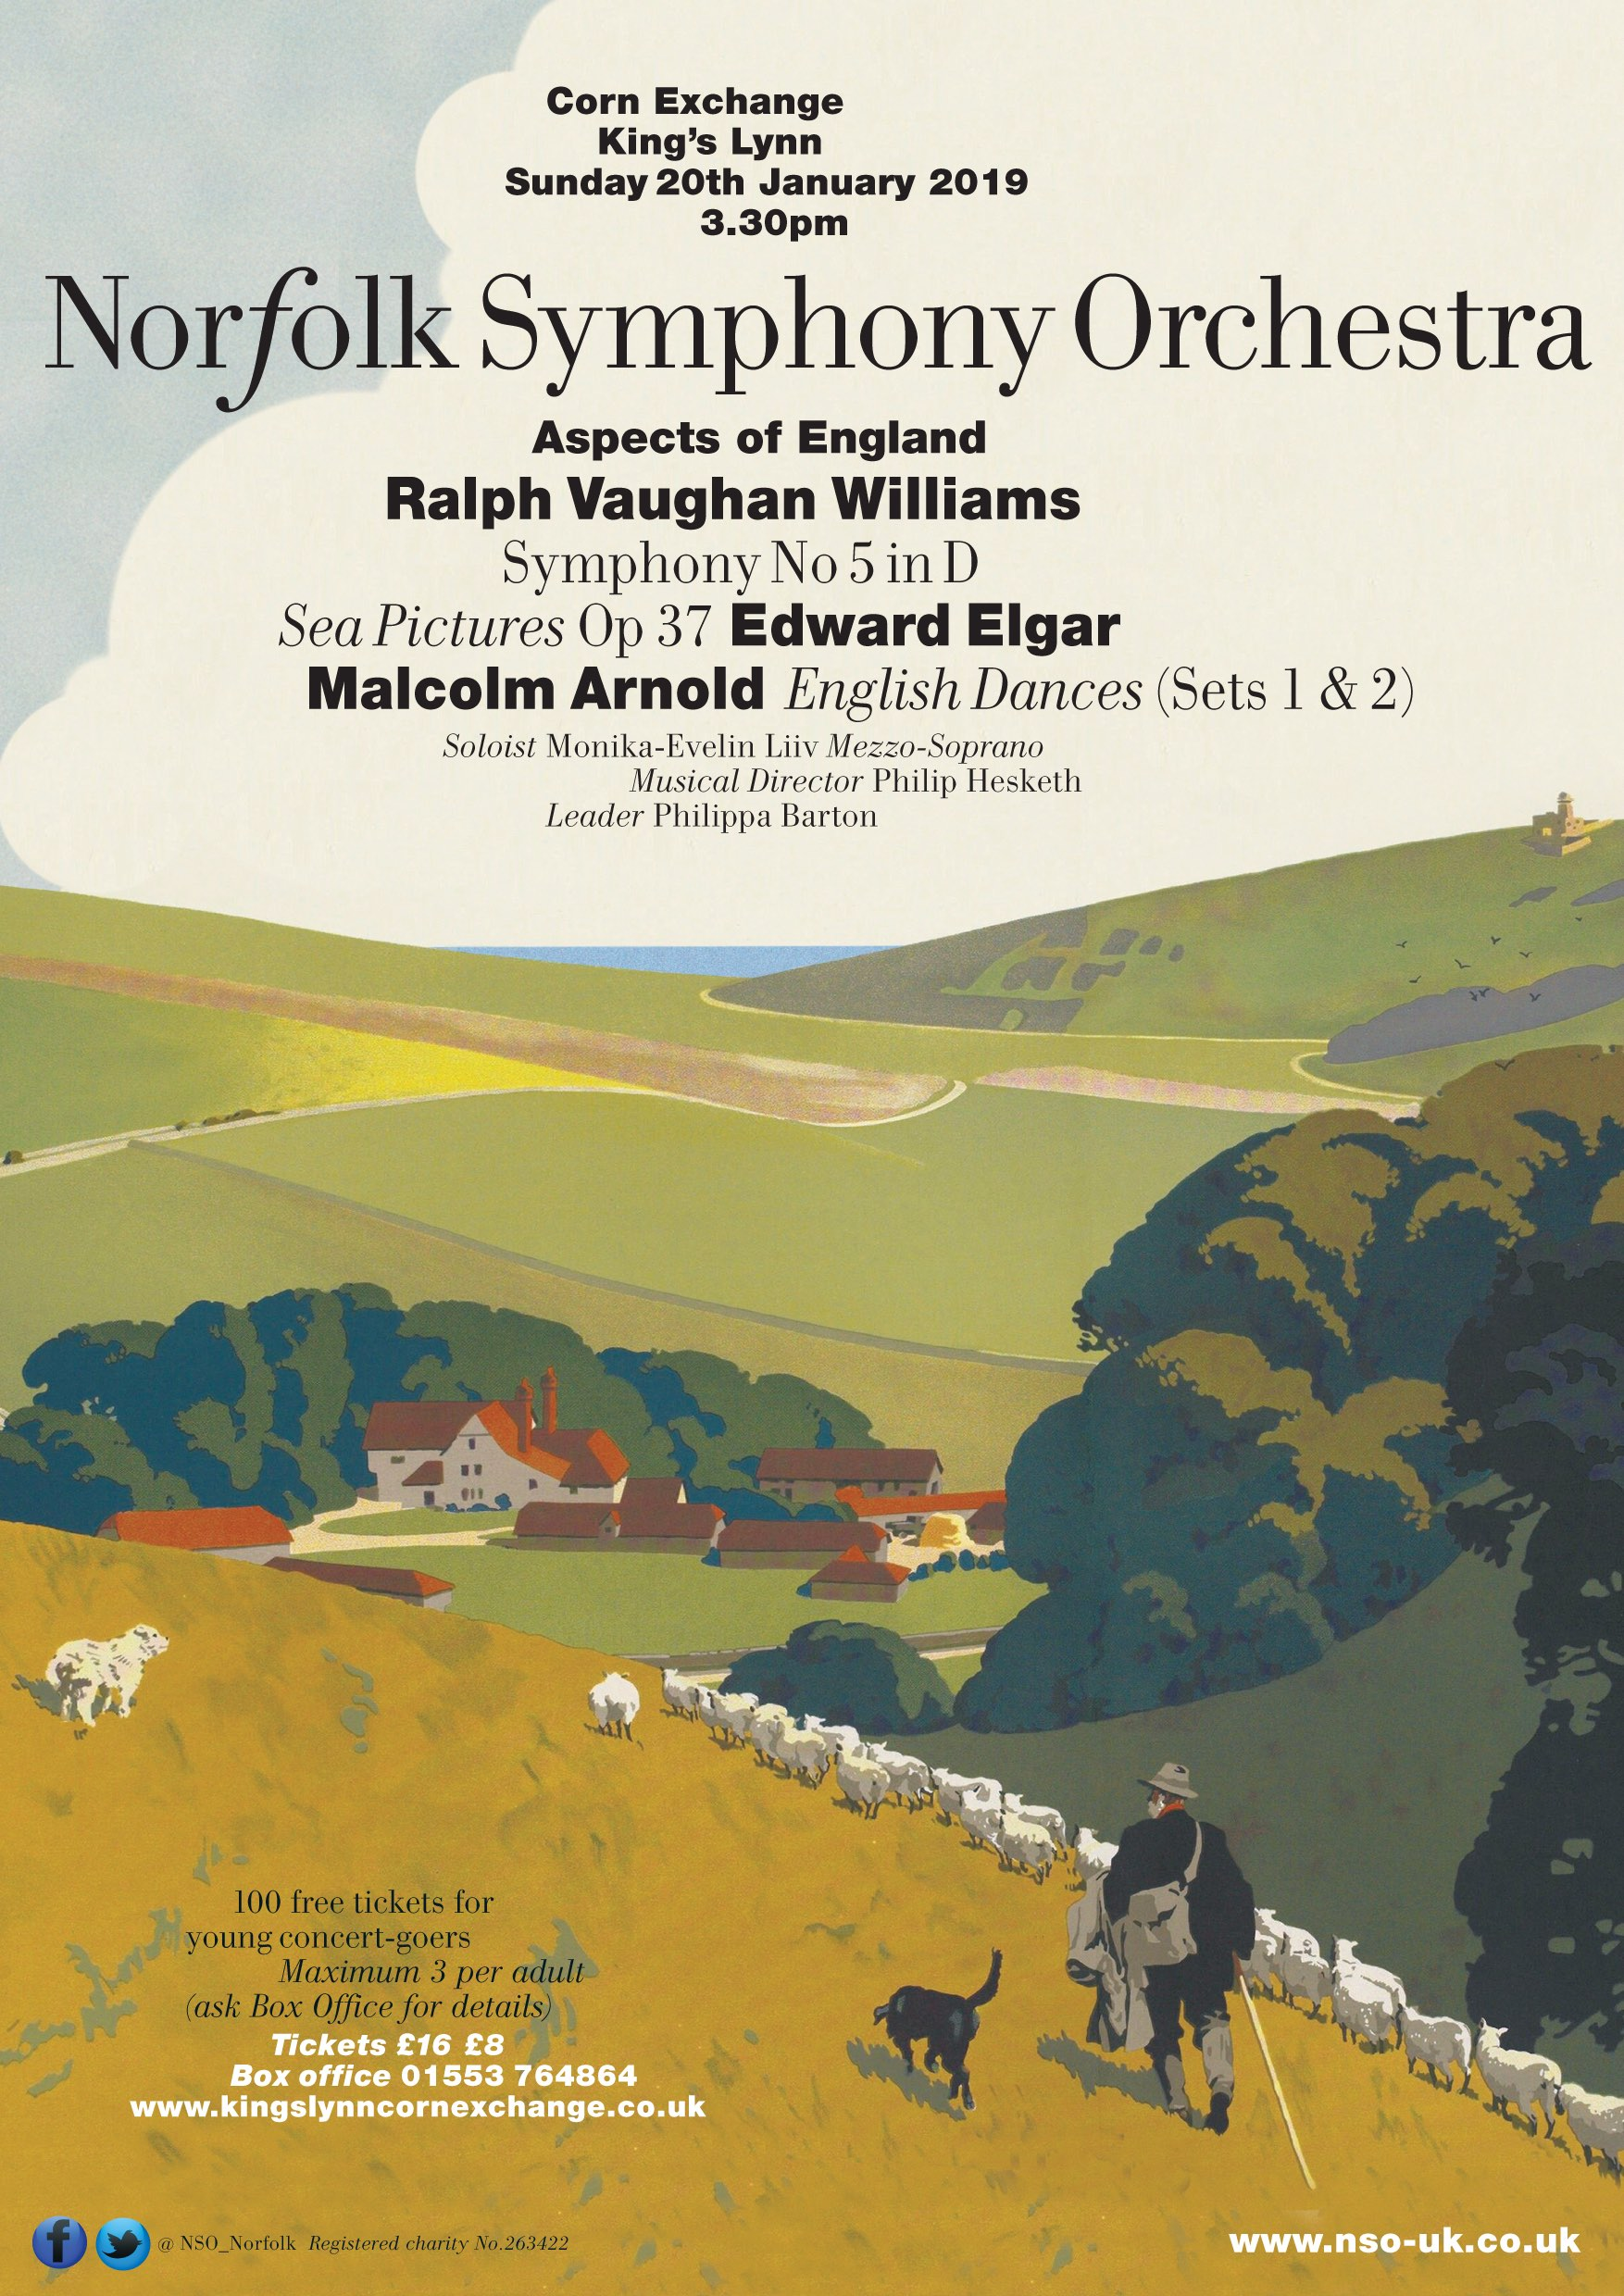 Norfolk Symphony Orchestra | Aspects of England, Our vision of England has many faces and this music seeks to express them. In this programme we play quintessentially English music by three composers, each from a different generation: Elgar, Vaughan Williams and Malcolm Arnold - Dalegate Market | Shopping & Café, Burnham Deepdale, North Norfolk Coast, England, UK